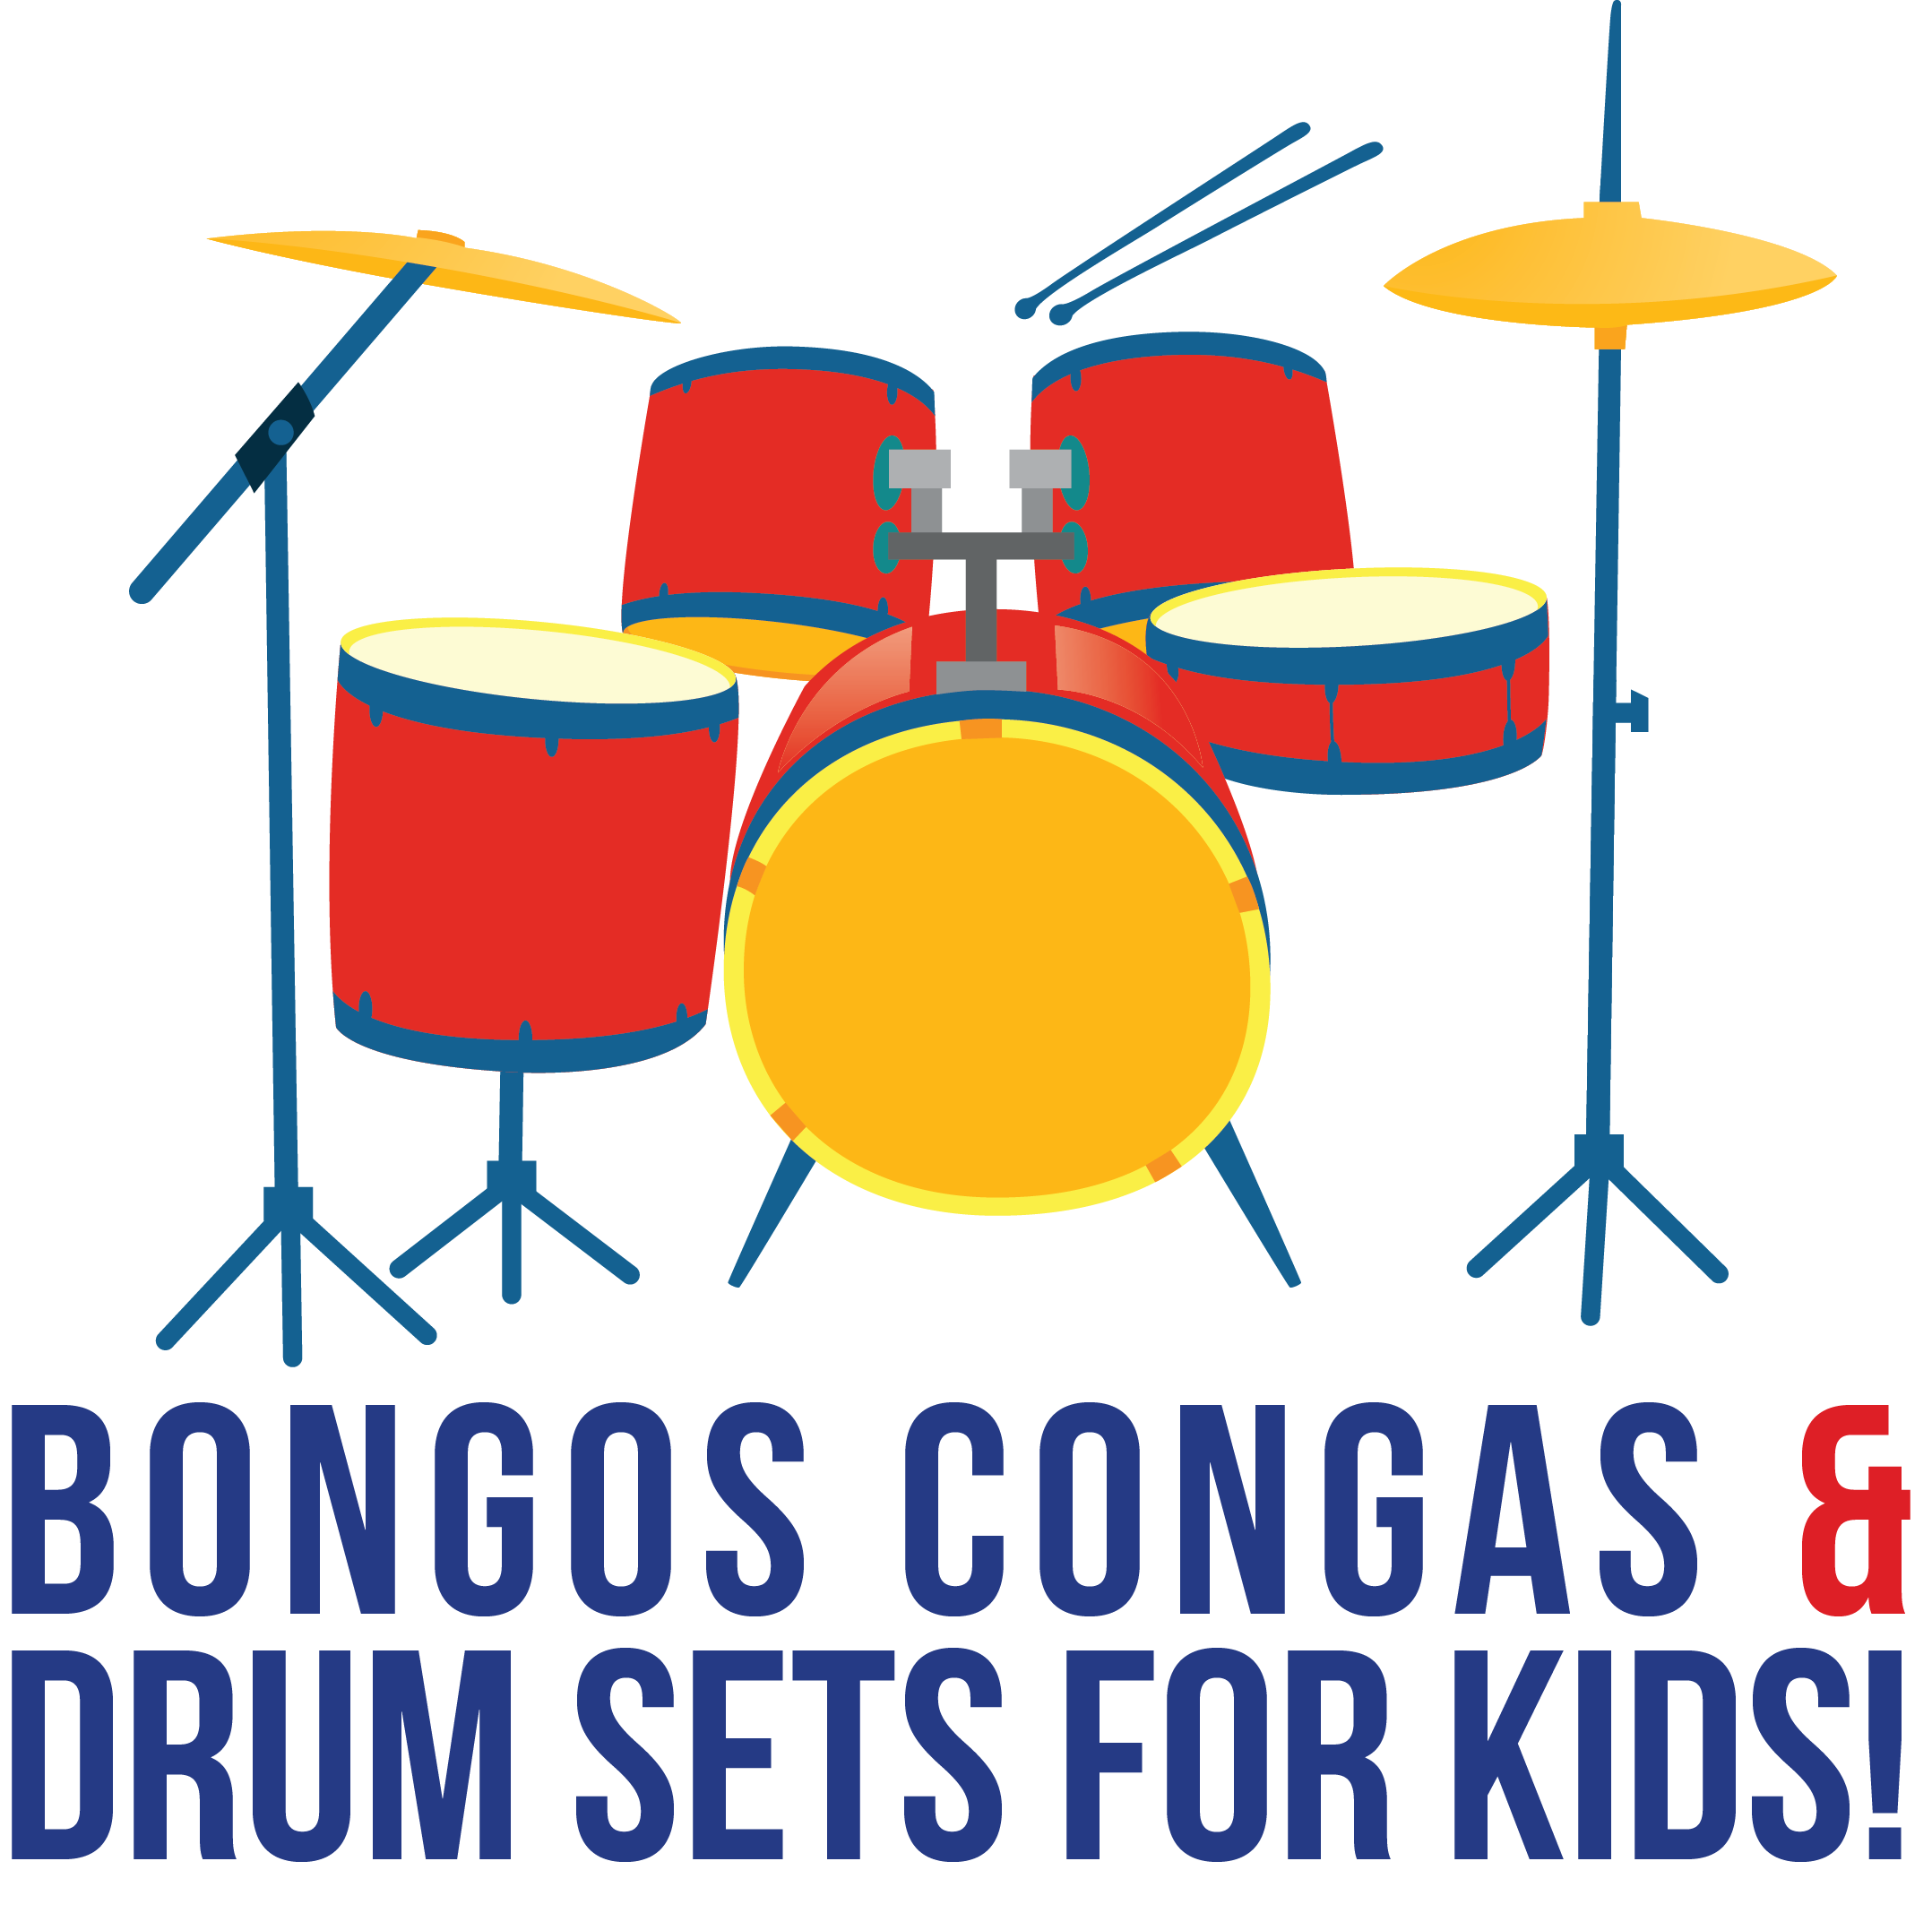 If your kids are interested in playing the drums, getting